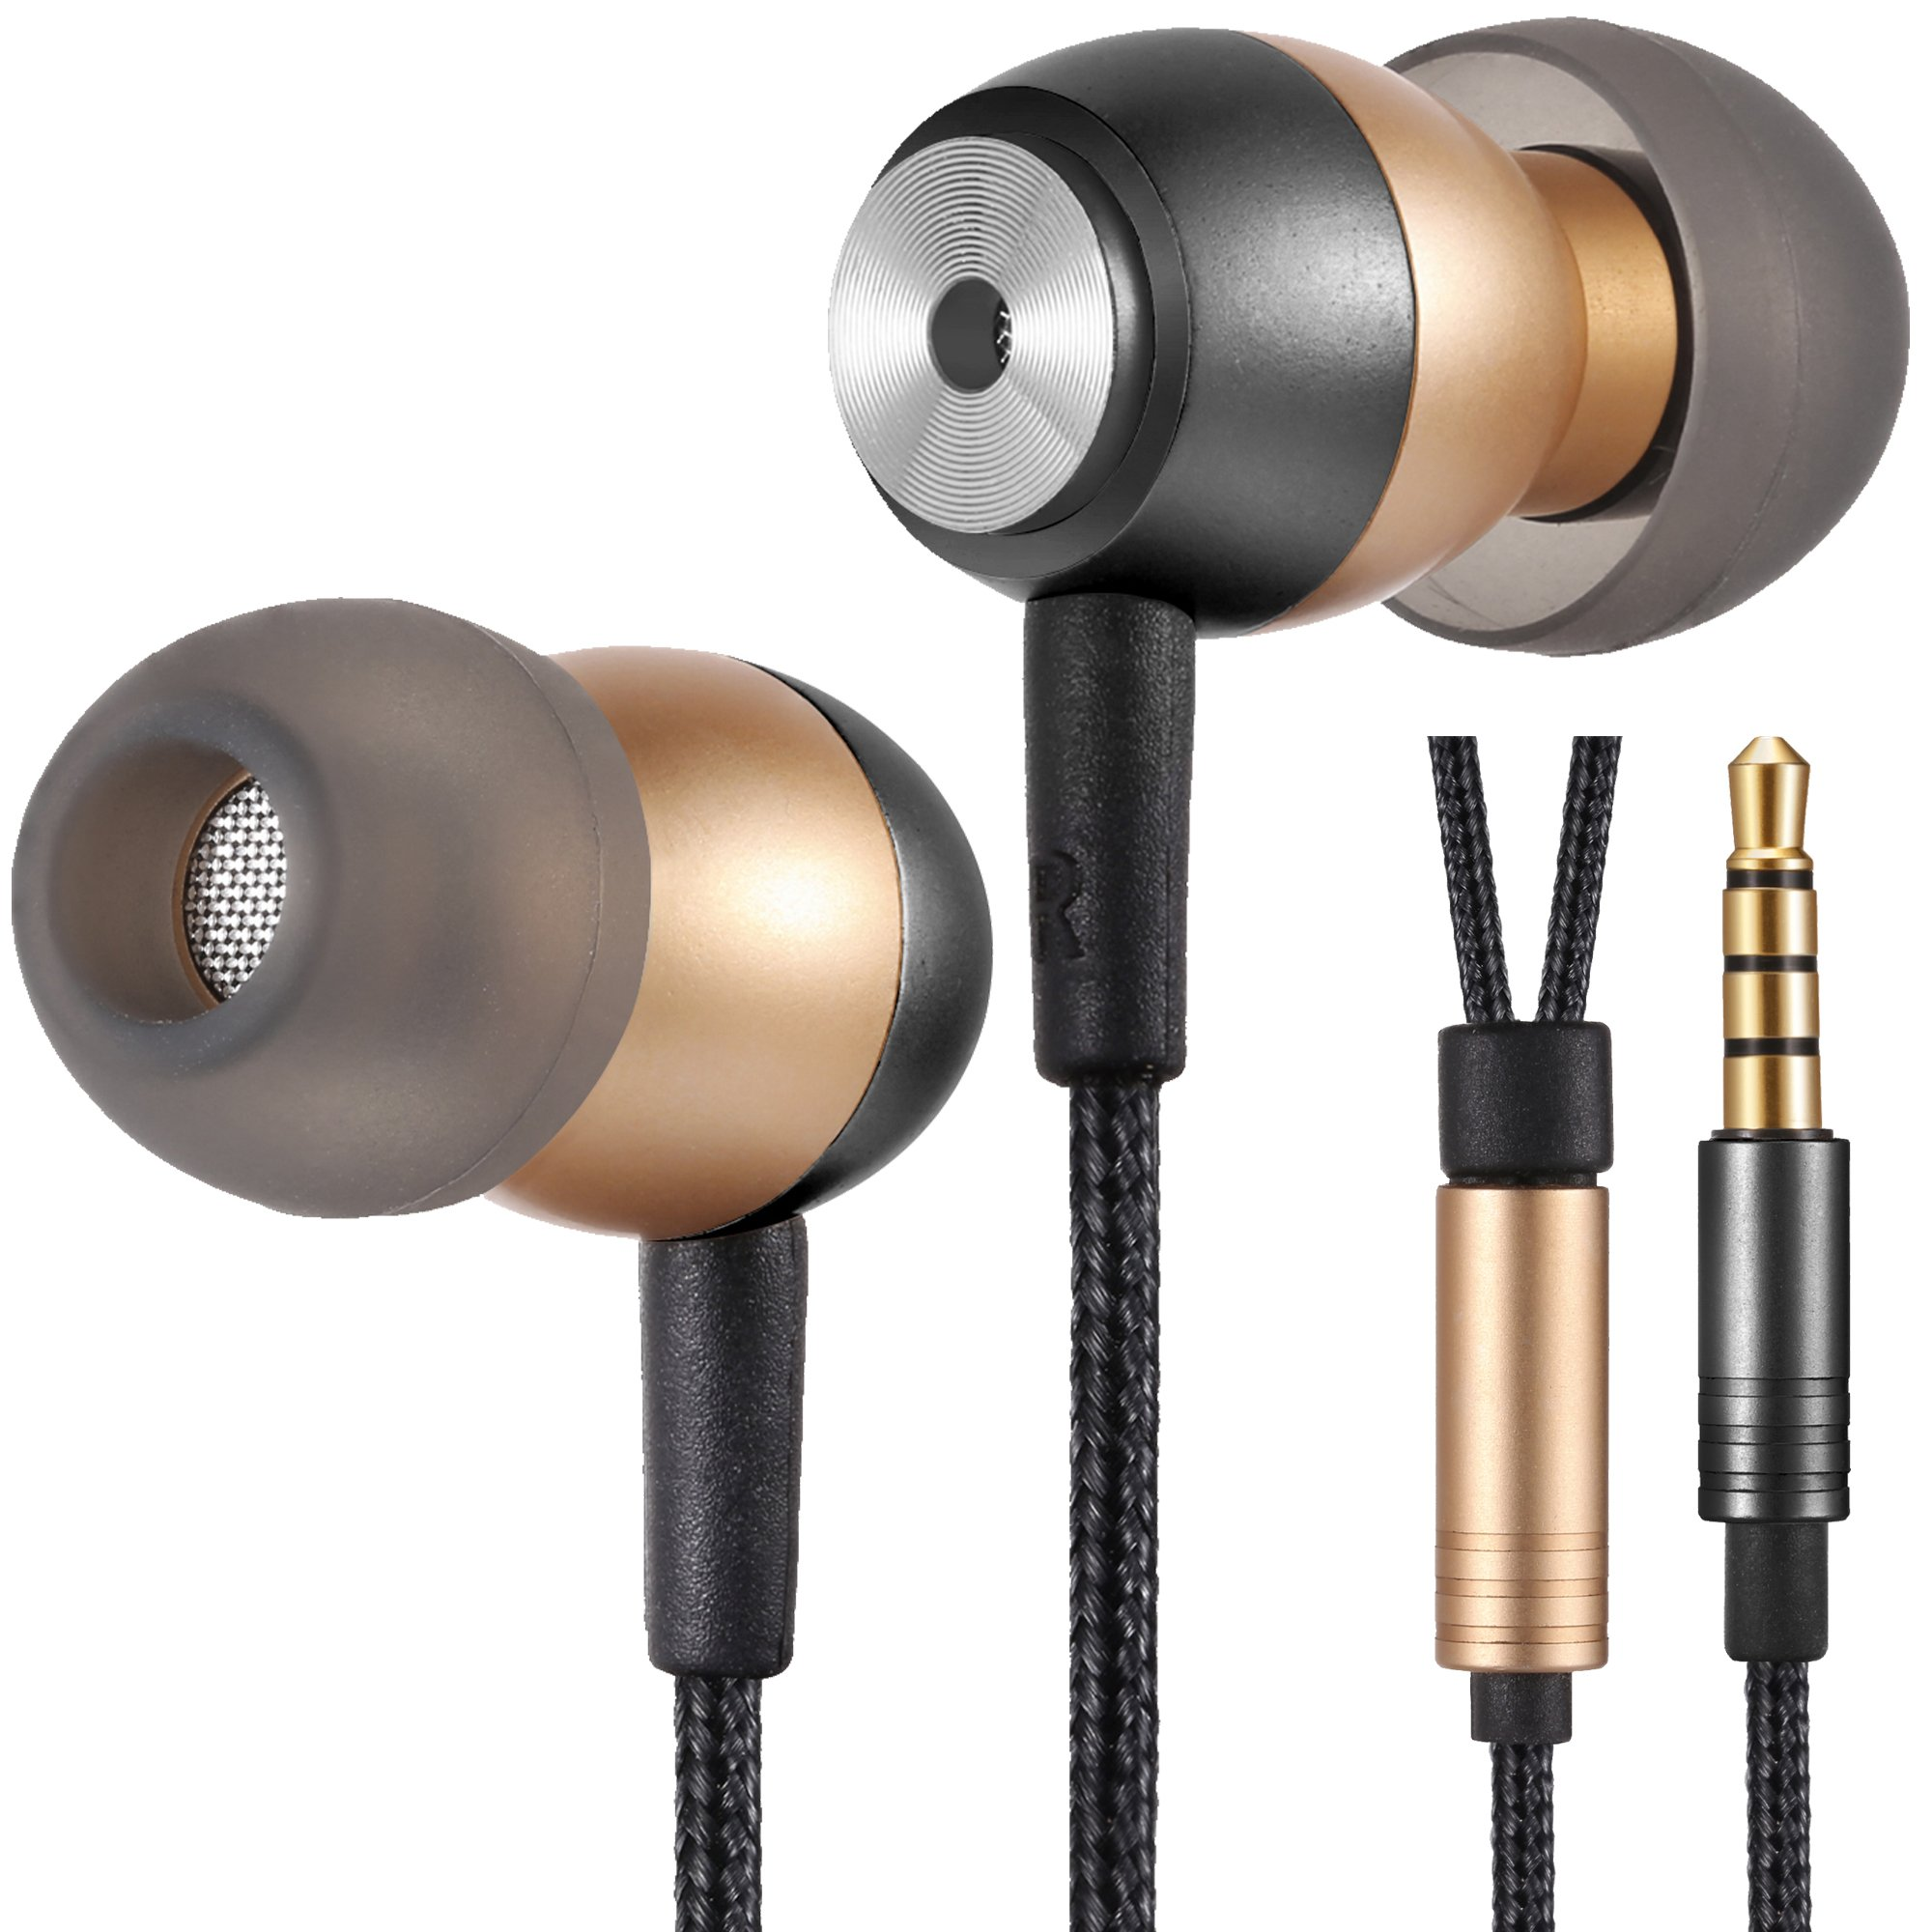 dc70dfdce29 Betron GLD60 Noise Isolating in Ear Earphones Headphones for iPhone ...